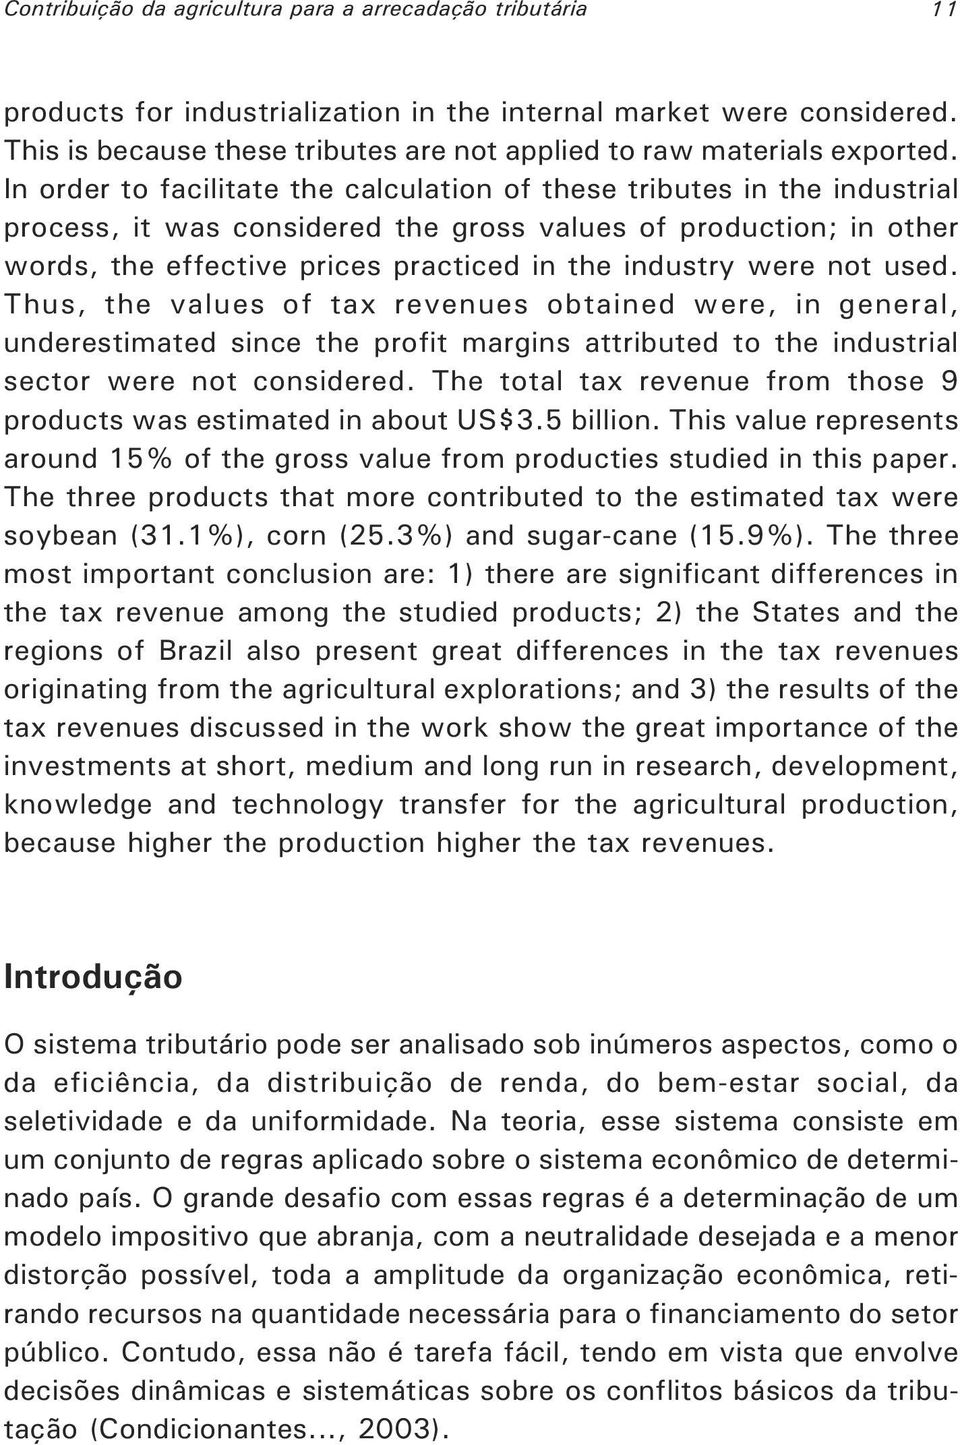 In order to facilitate the calculation of these tributes in the industrial process, it was considered the gross values of production; in other words, the effective prices practiced in the industry